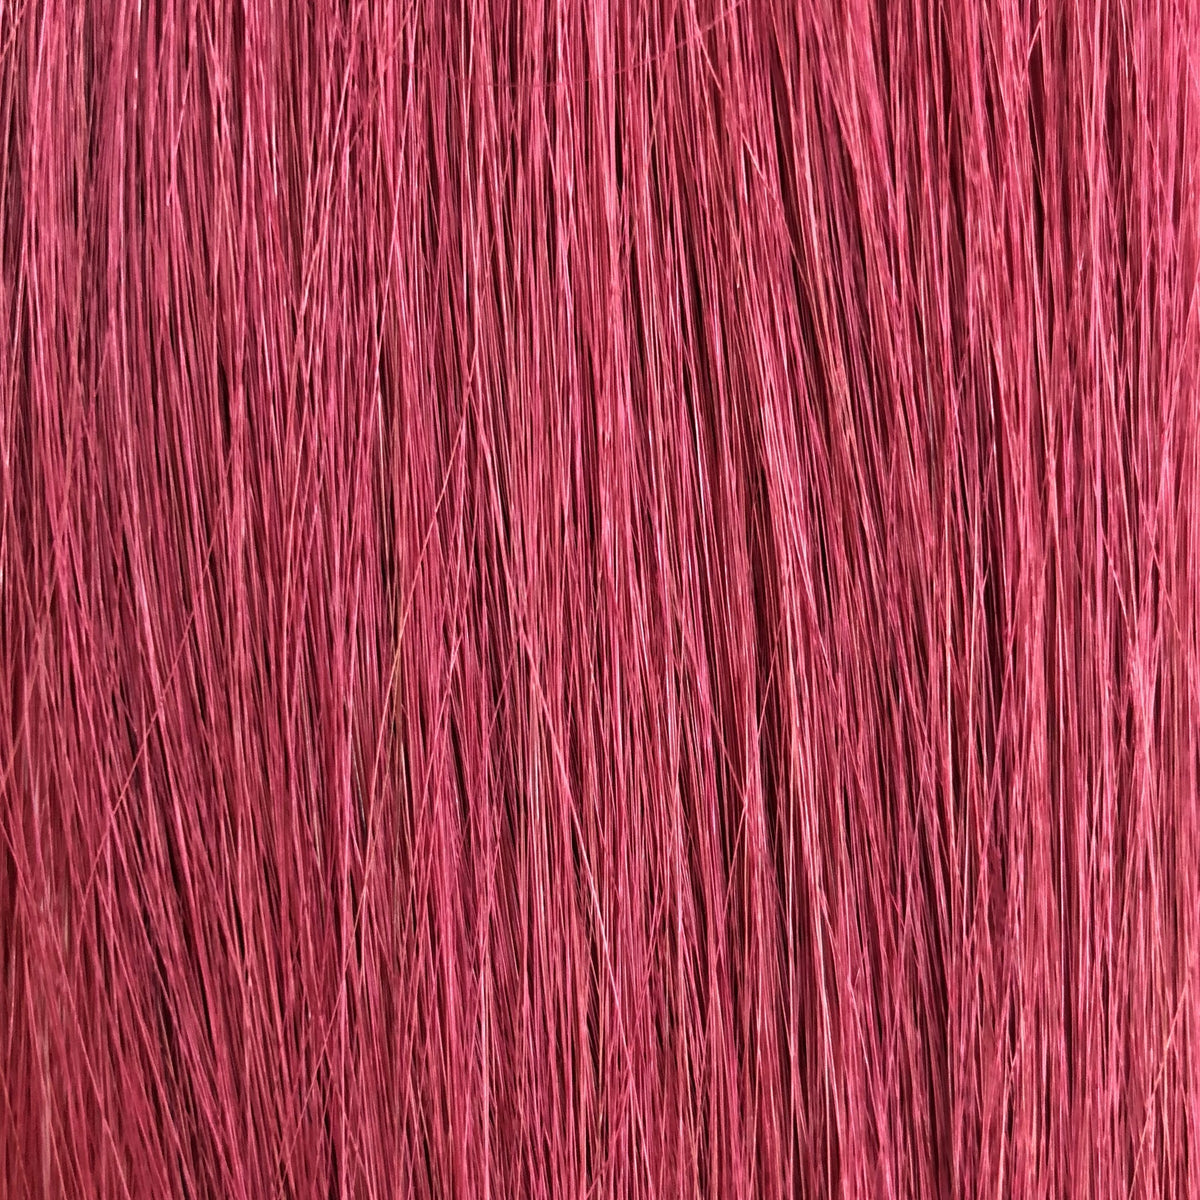 Laced Hair Tape-In Extensions Ruby